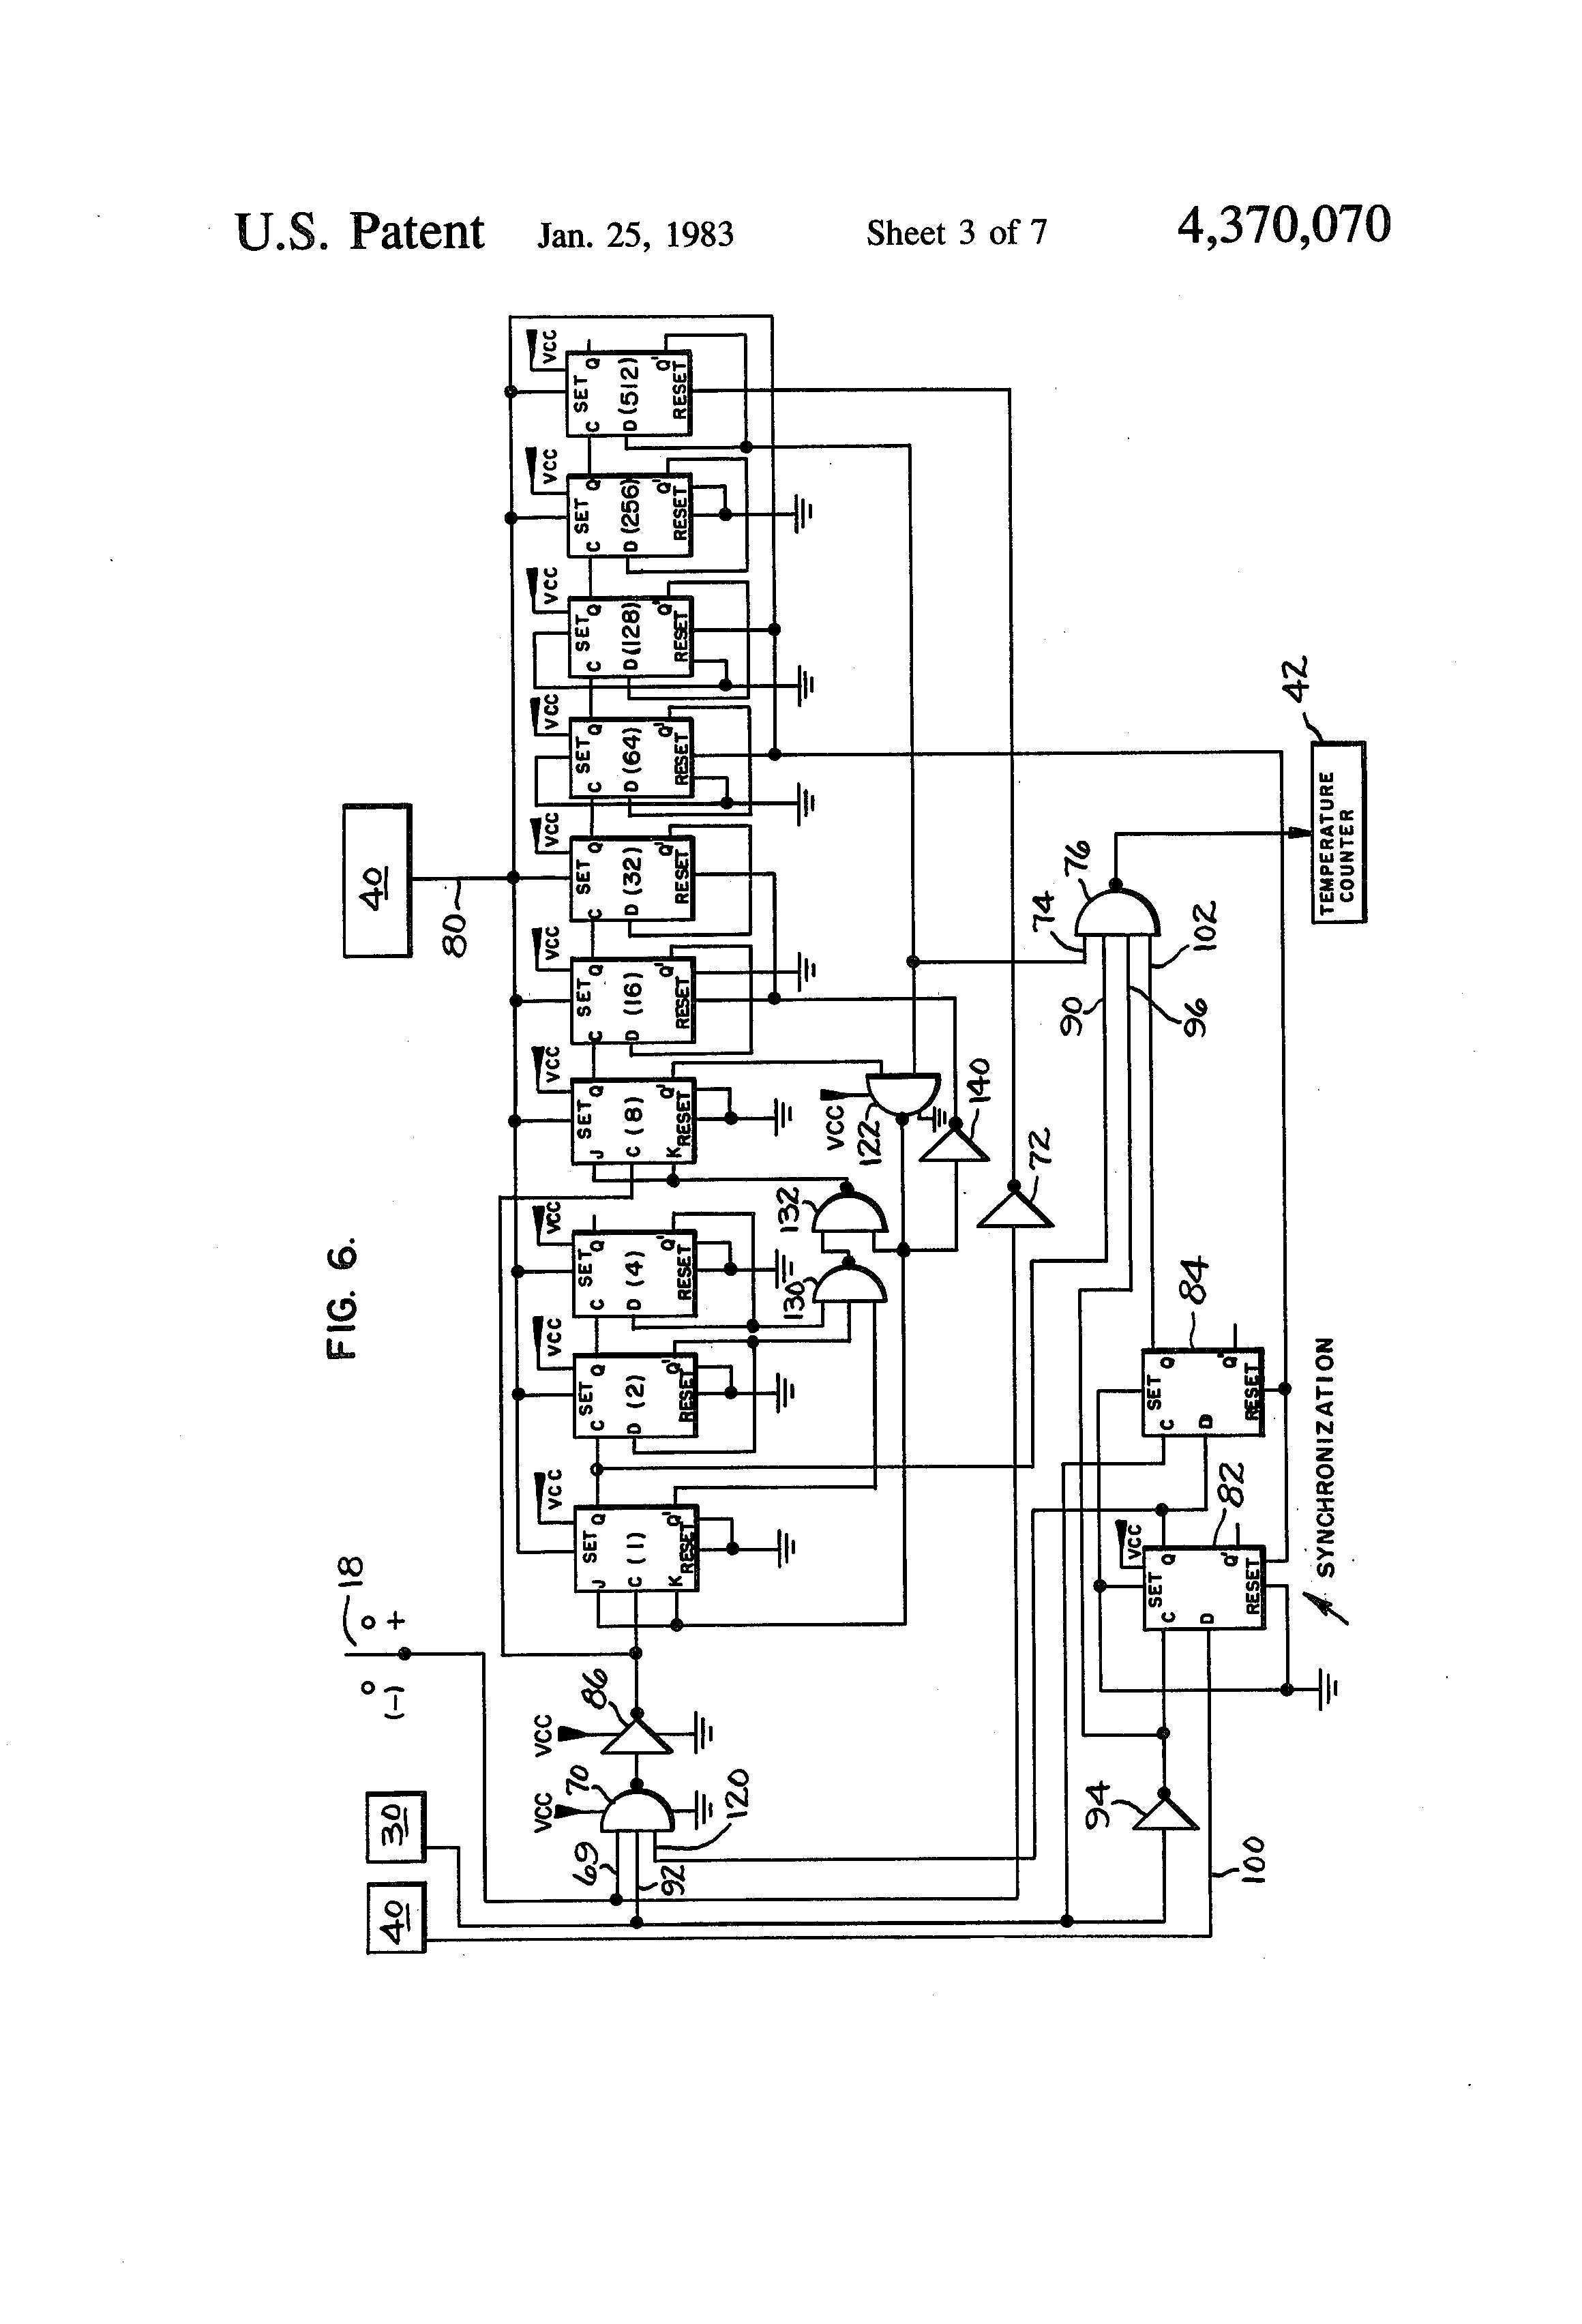 Patent Us4370070 Digital Thermometer Having Fahrenheit And Celsius Figure 1 Representative Circuit For A Capacitorcharging Drawing